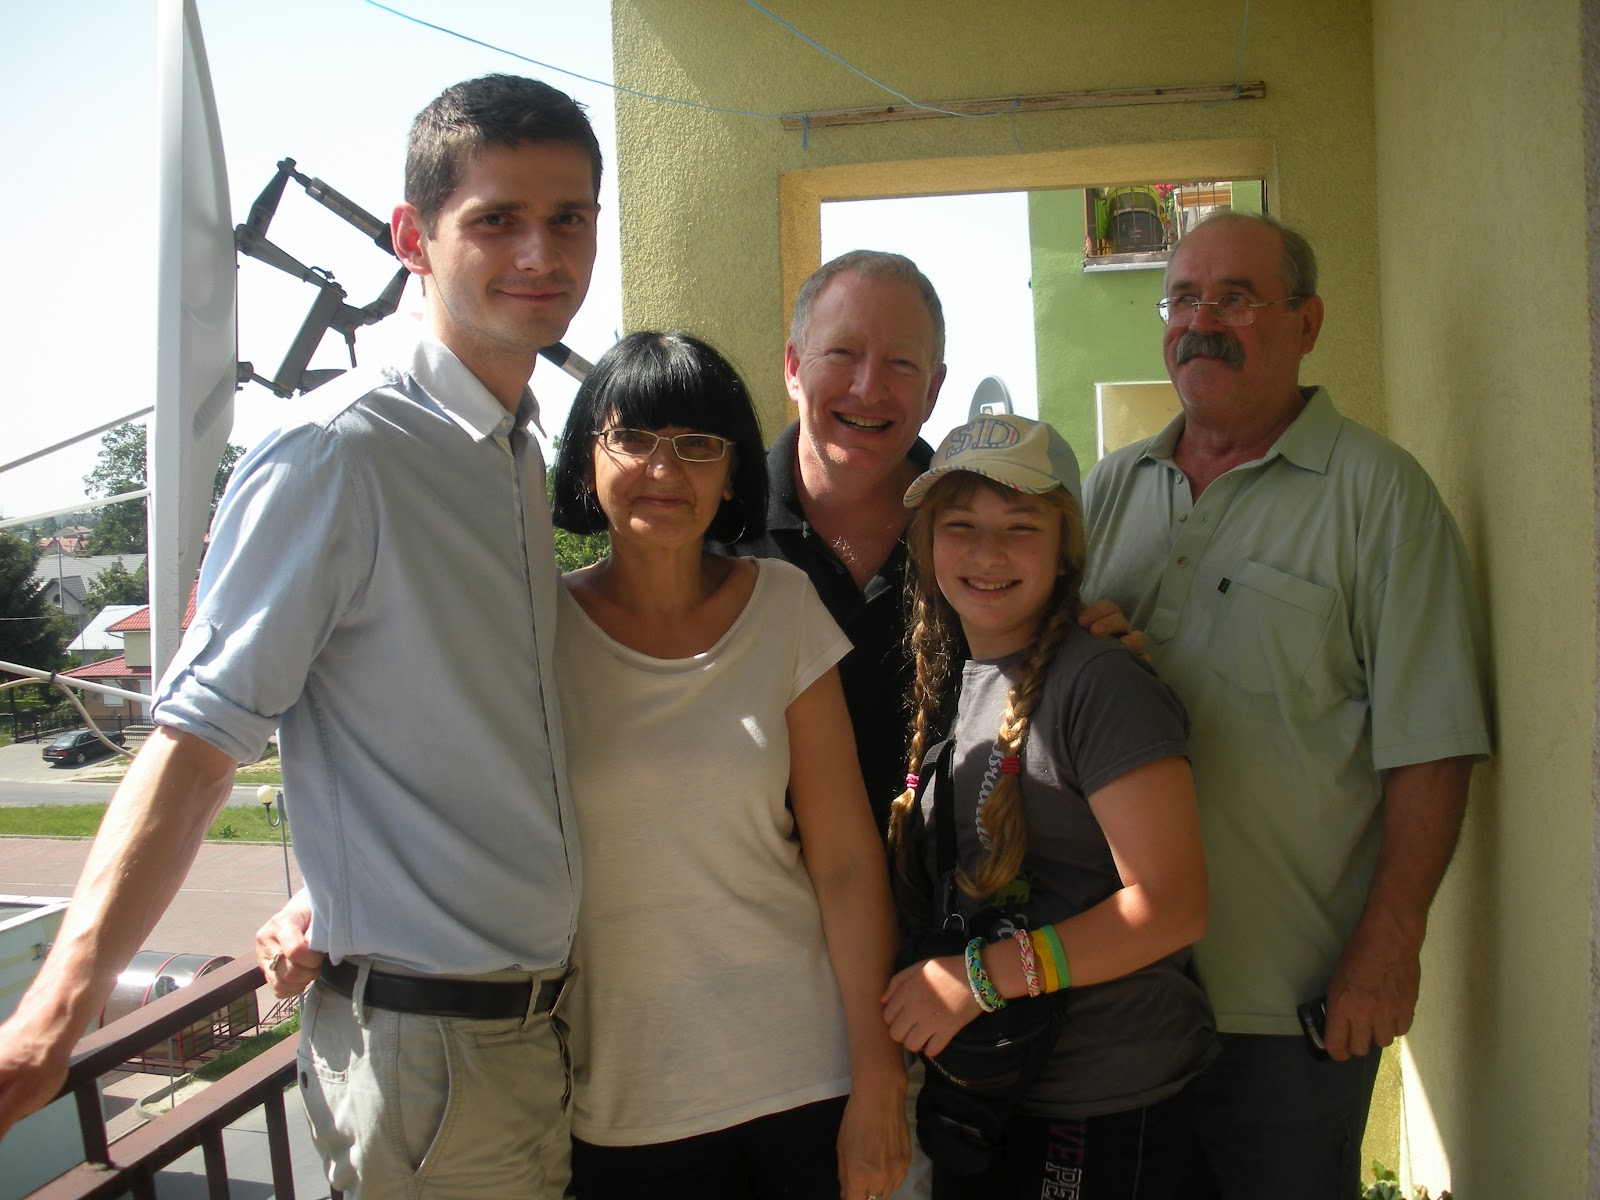 dollingers in eastern europe mizritch partzevah lublin richard and his family